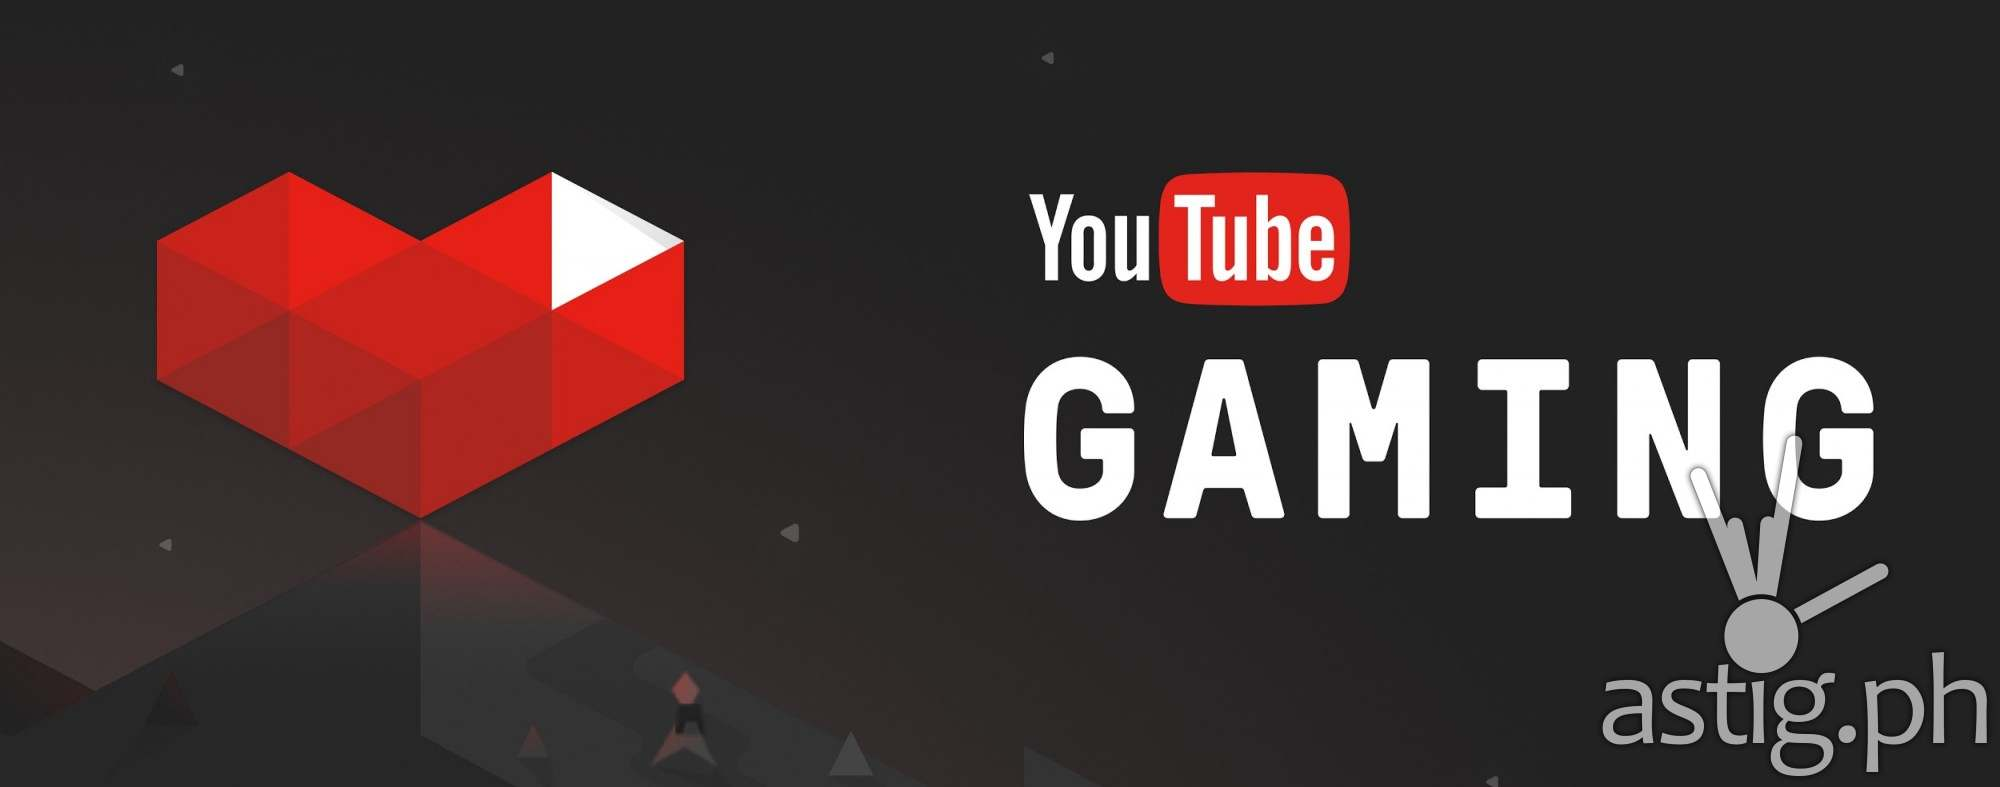 Youtube Gaming Comes To Philippines Twitch Killer Astig Ph